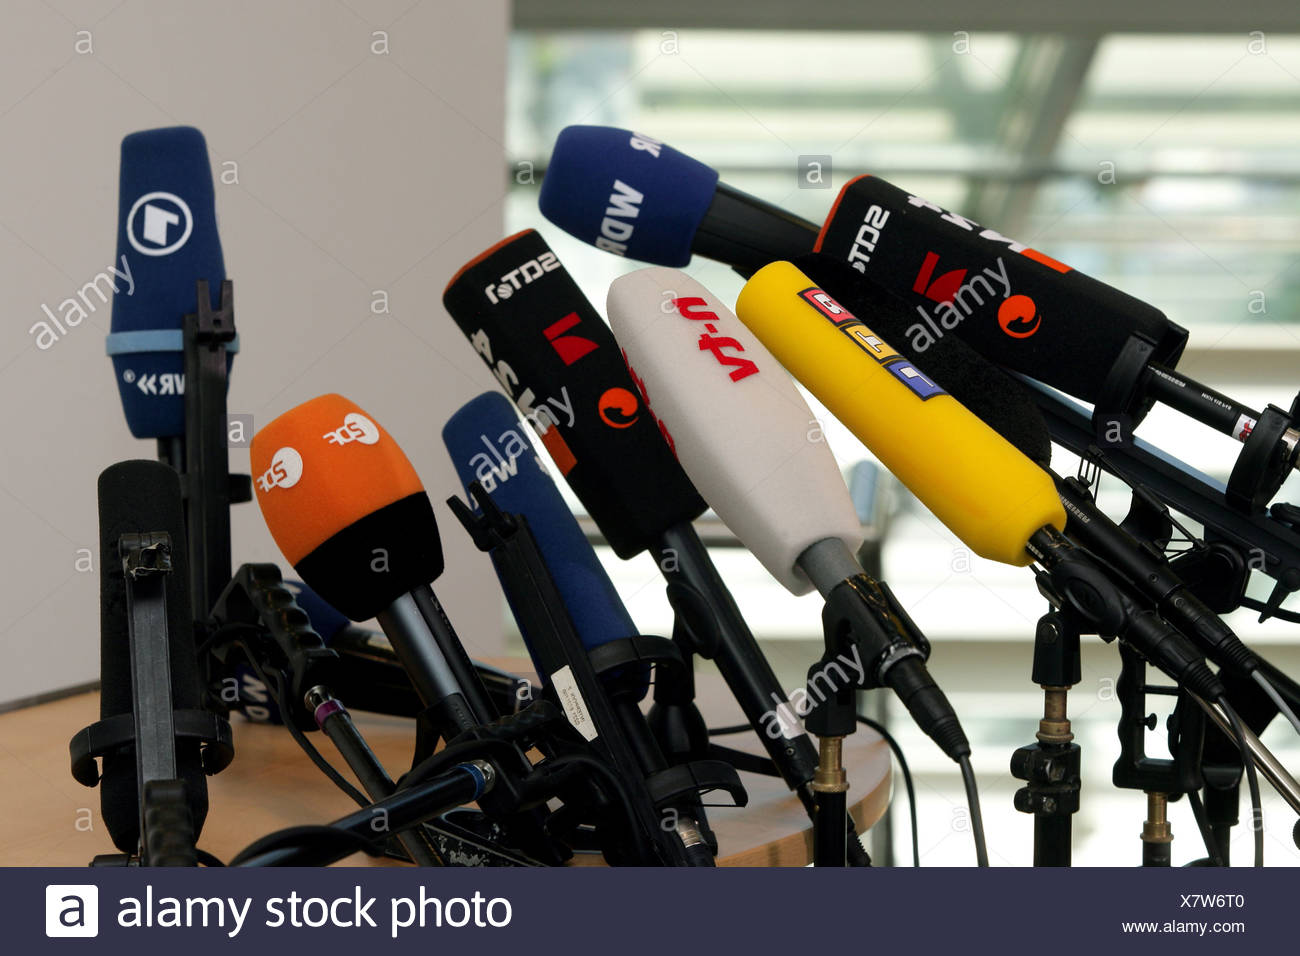 Microphones from german tv channels - Stock Image